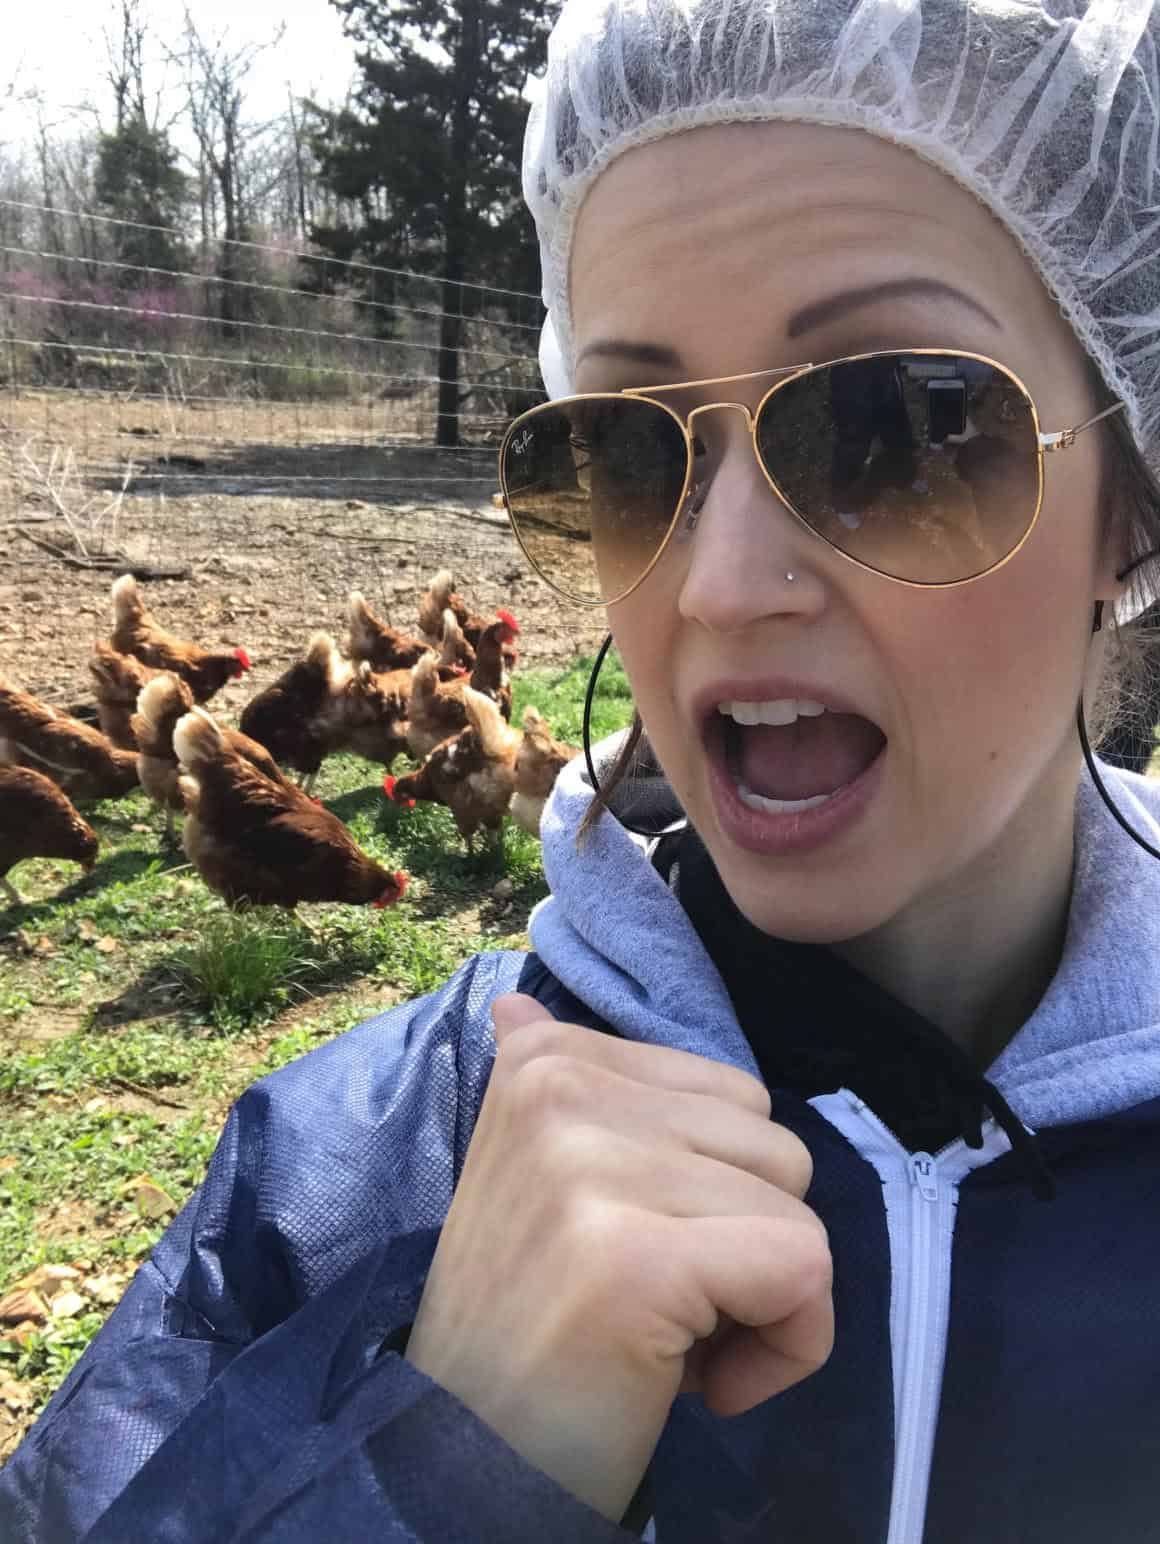 Vital Farms Tour Recap - Sharing how I saw first hand that Vital Farms is the real deal! They are raising happy, healthy hens and treating their employees with respect!   #Foodfaithfitness  